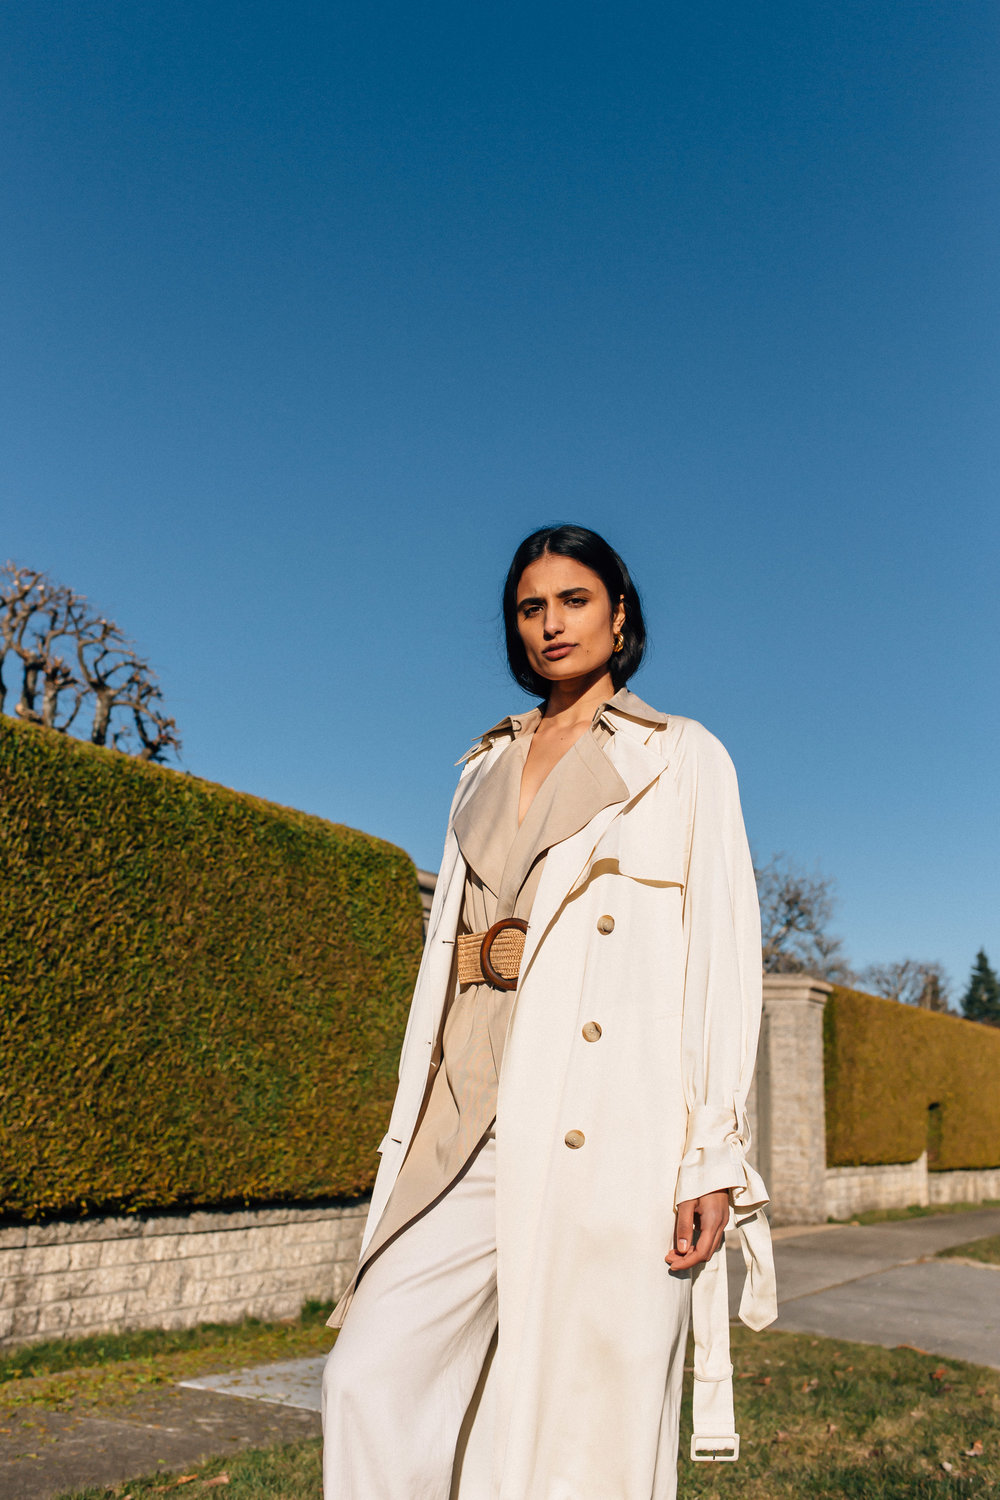 Katie  wearing  Earrings, Céline  Jackets & Bottom, Aritzia Shoes, Dries Van Noten   Key Models ,  Plutino Models ,  Folio Montreal   Styled by  Jake Ahnert   Vancouver '19